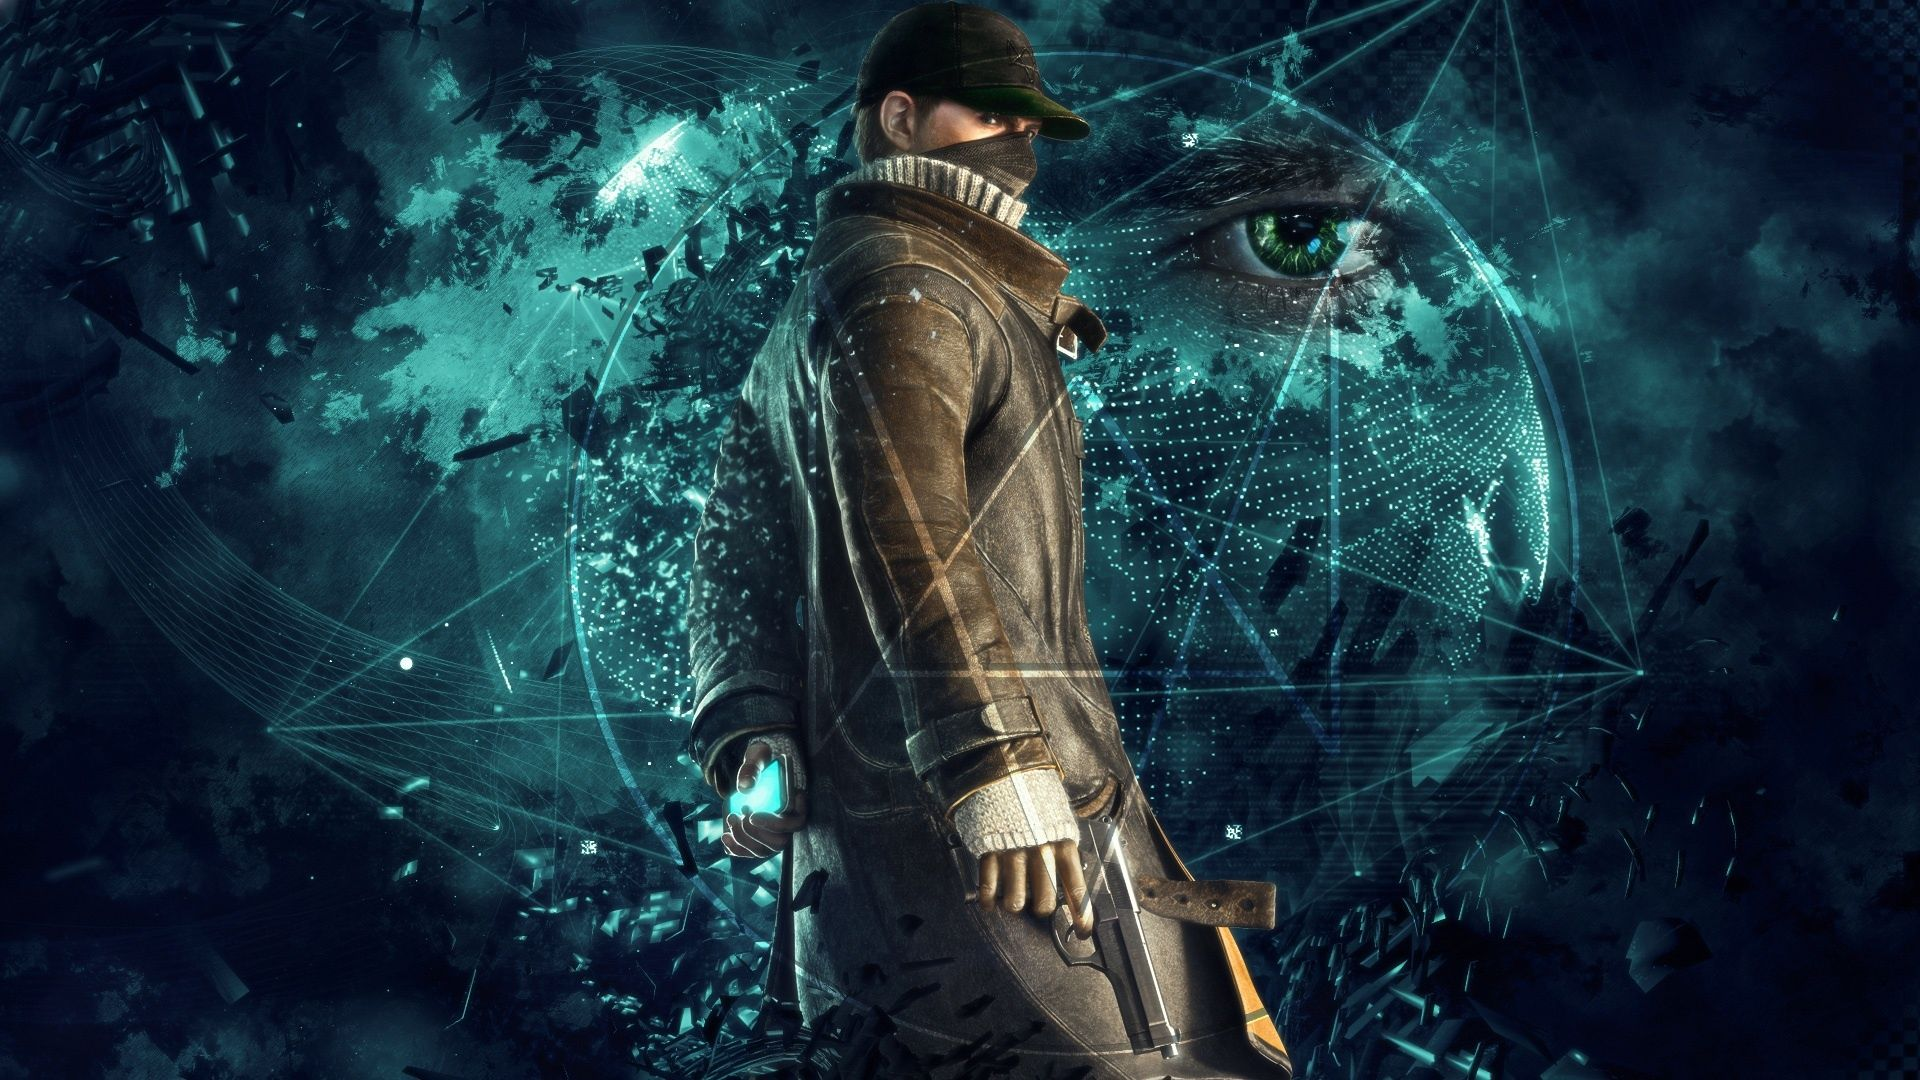 Pin On Watch Dogs